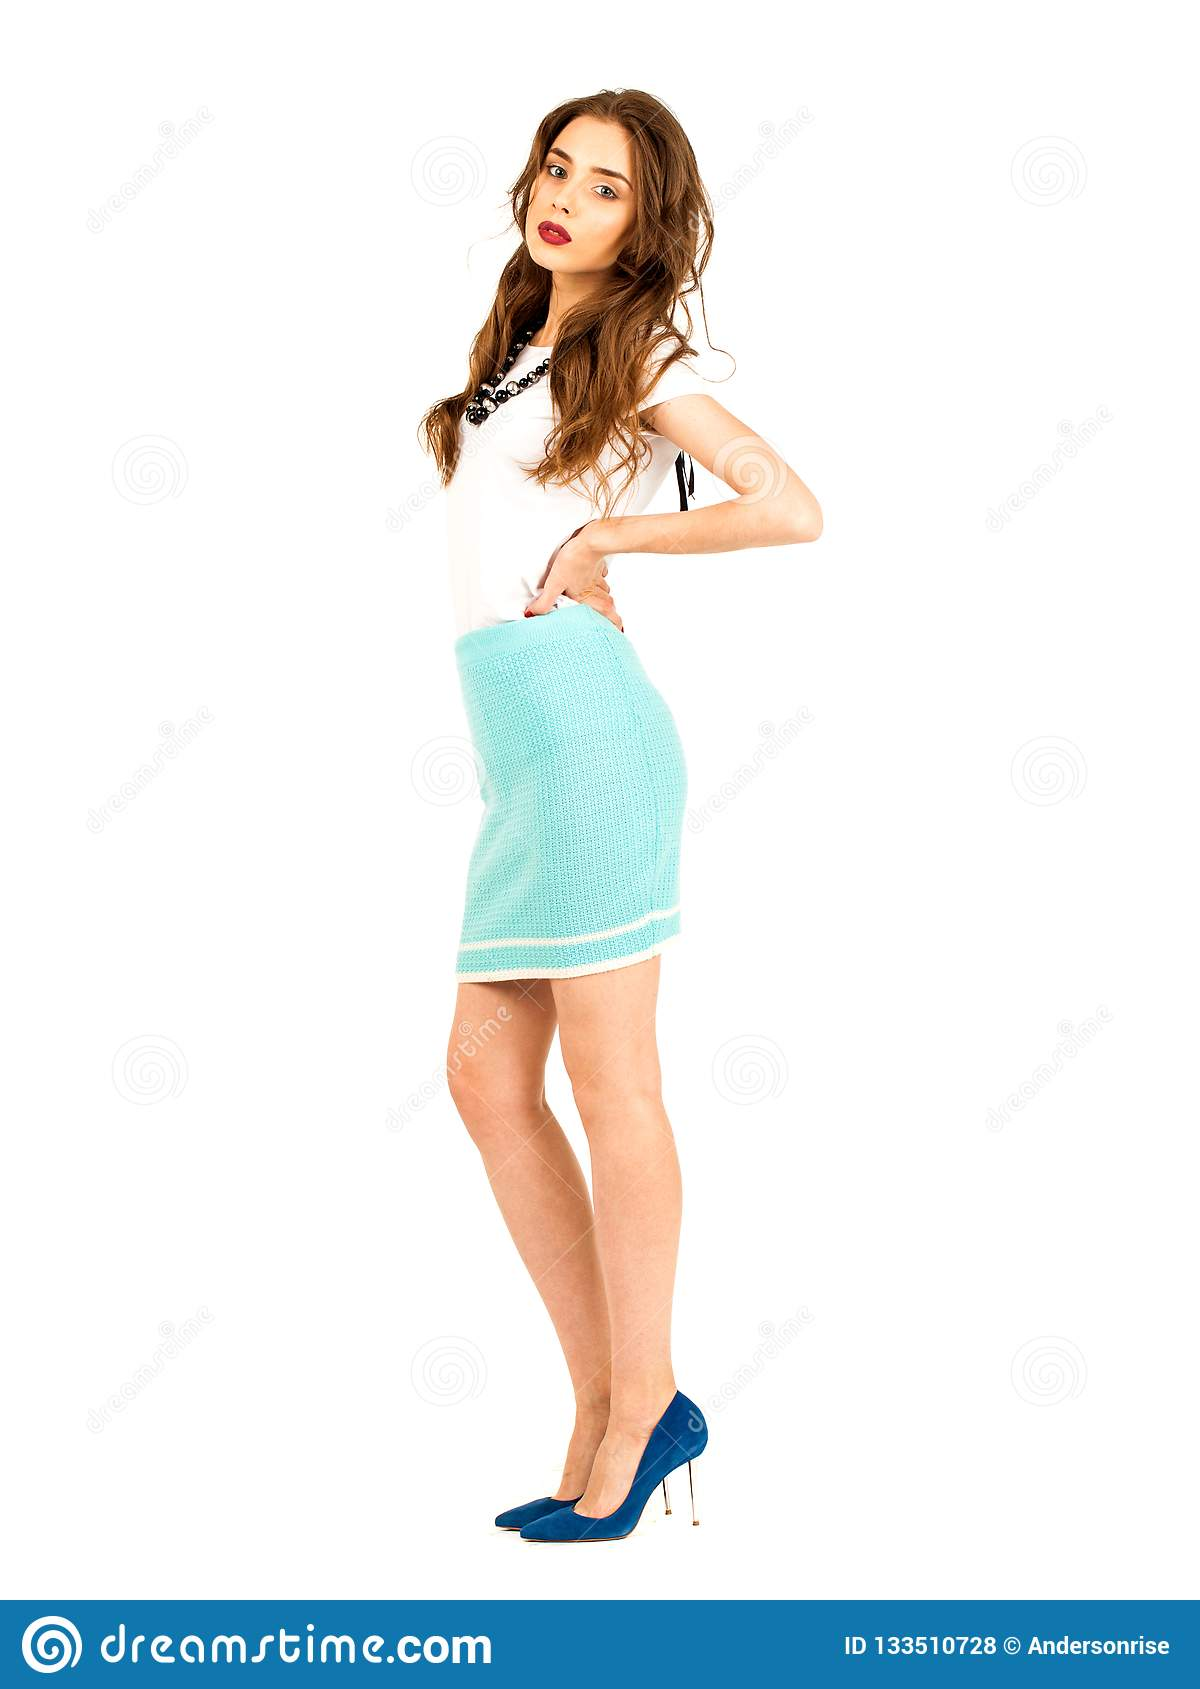 Brunette woman in a knitted turquoise skirt and white t-shirt